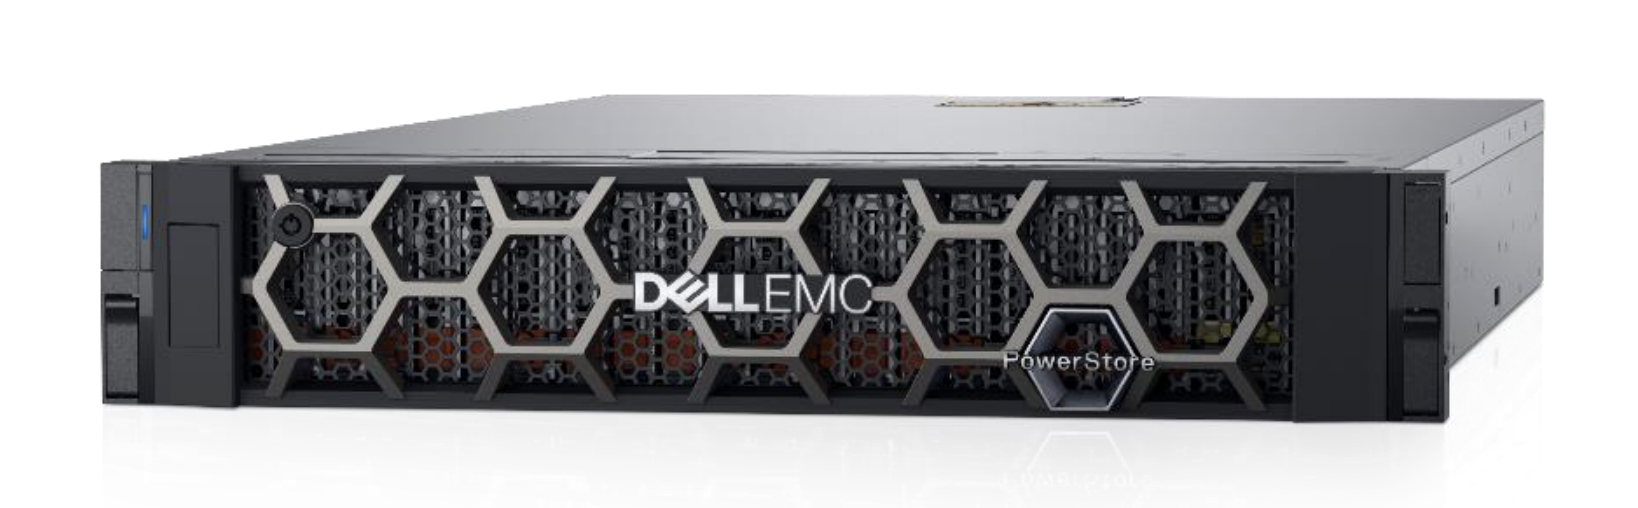 Dell EMC PowerStore… Designed for the Data Era